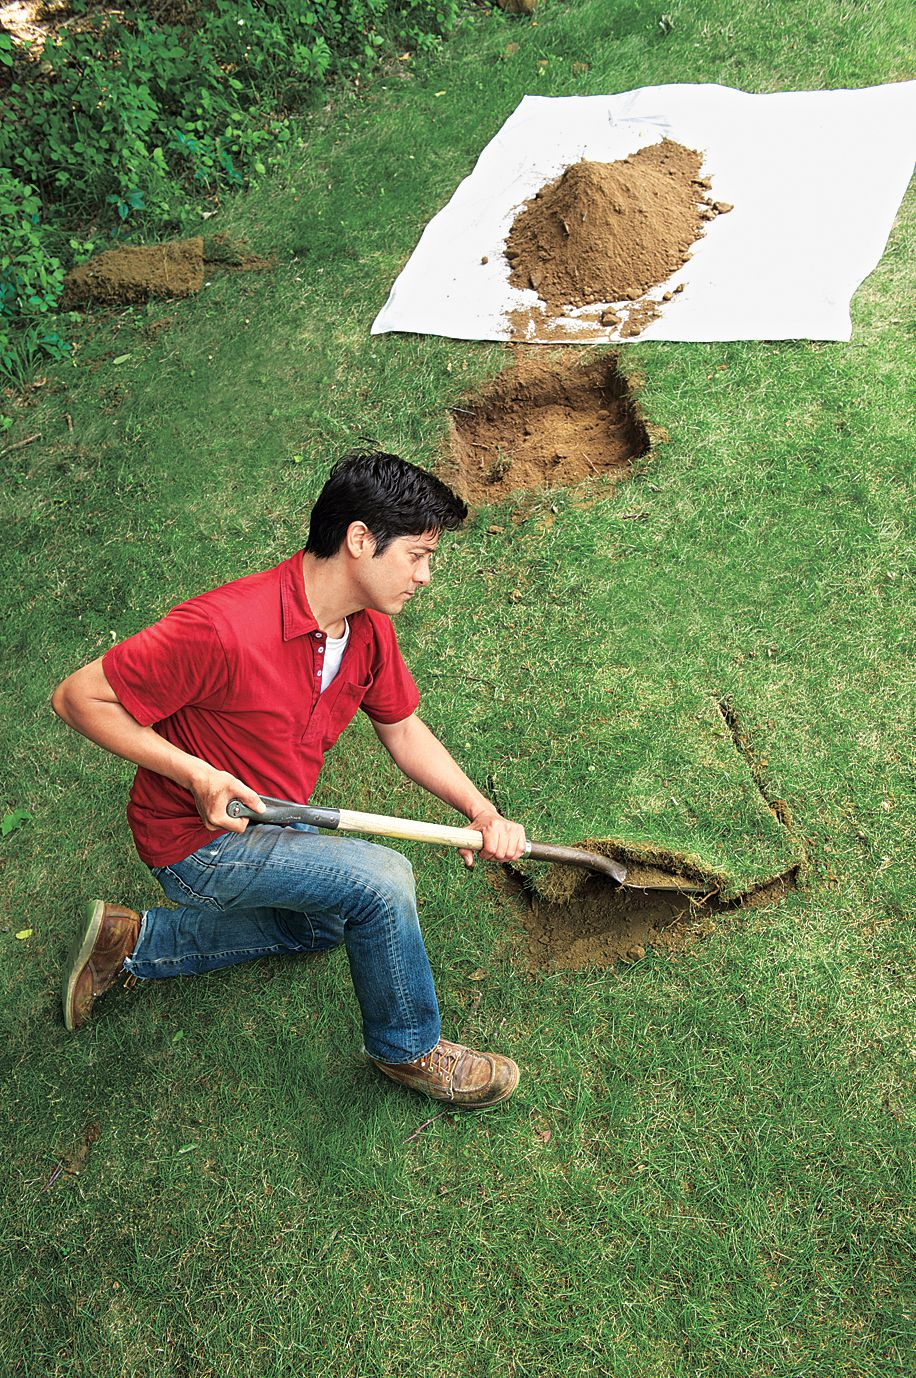 Man Digs Up Soil To Place Planter Base In Ground